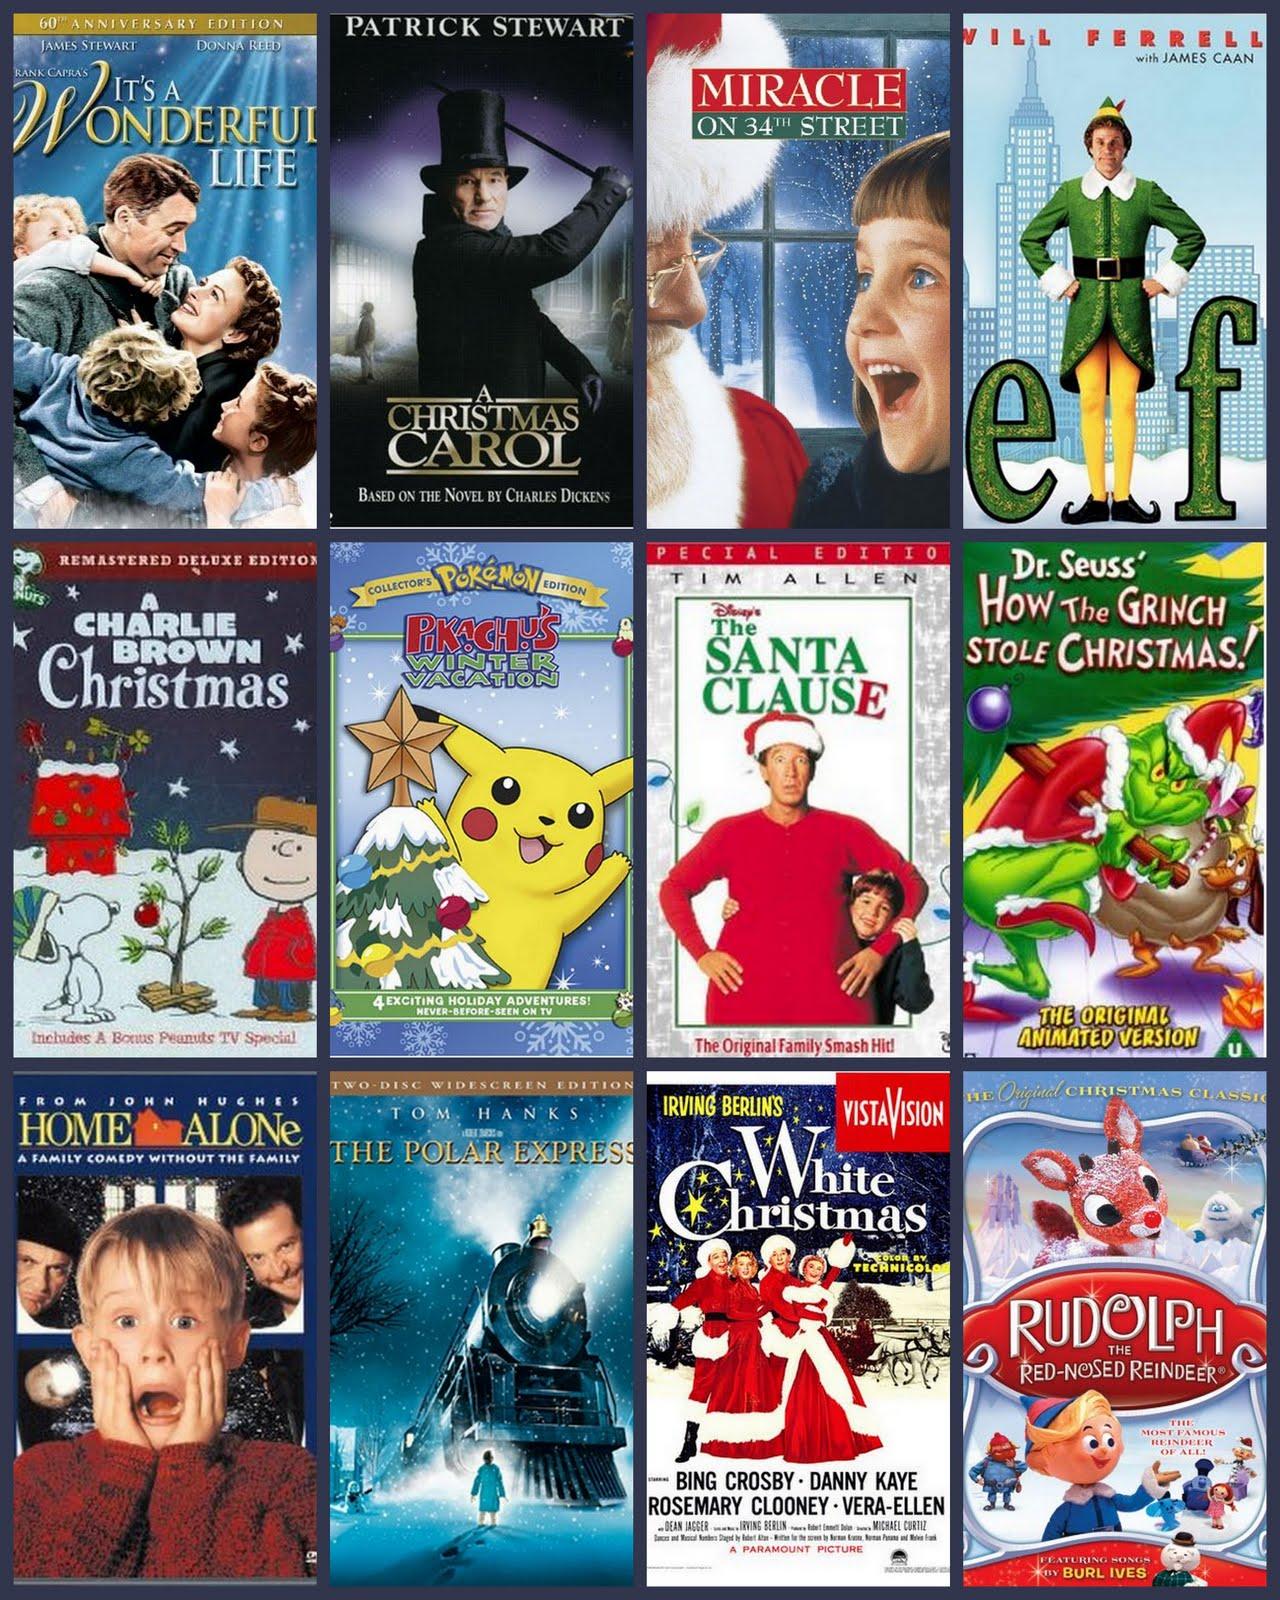 Your Link to Idaho: Favorite Christmas Movies